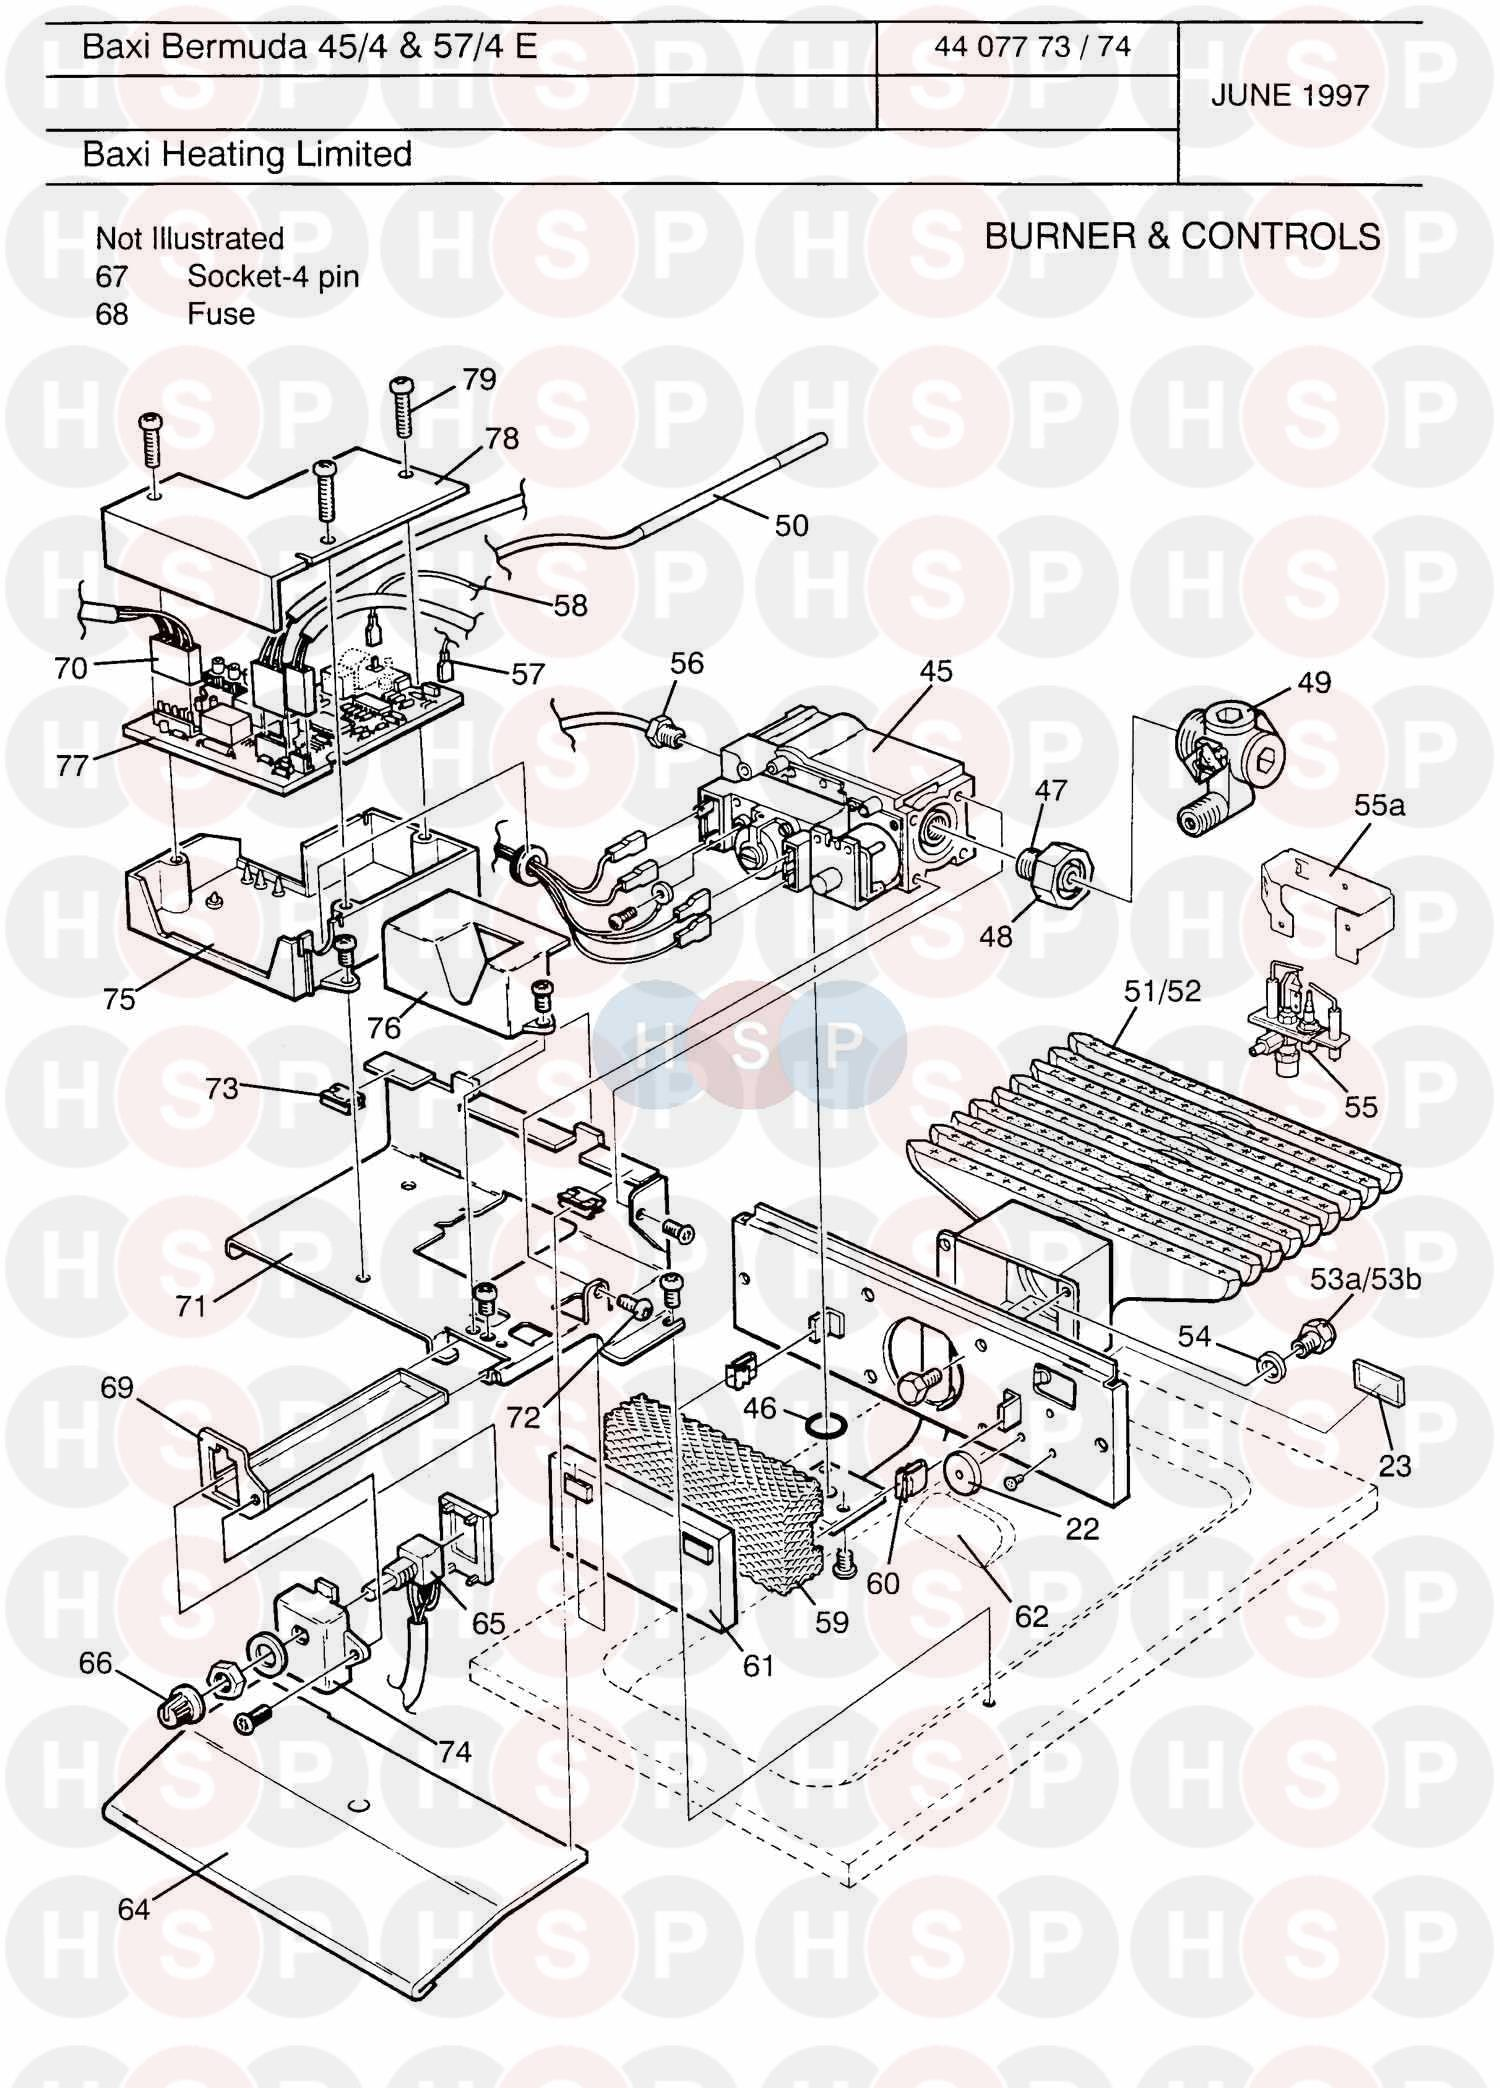 Baxi BERMUDA 45/4 ELECTRONIC Appliance Diagram (BURNER